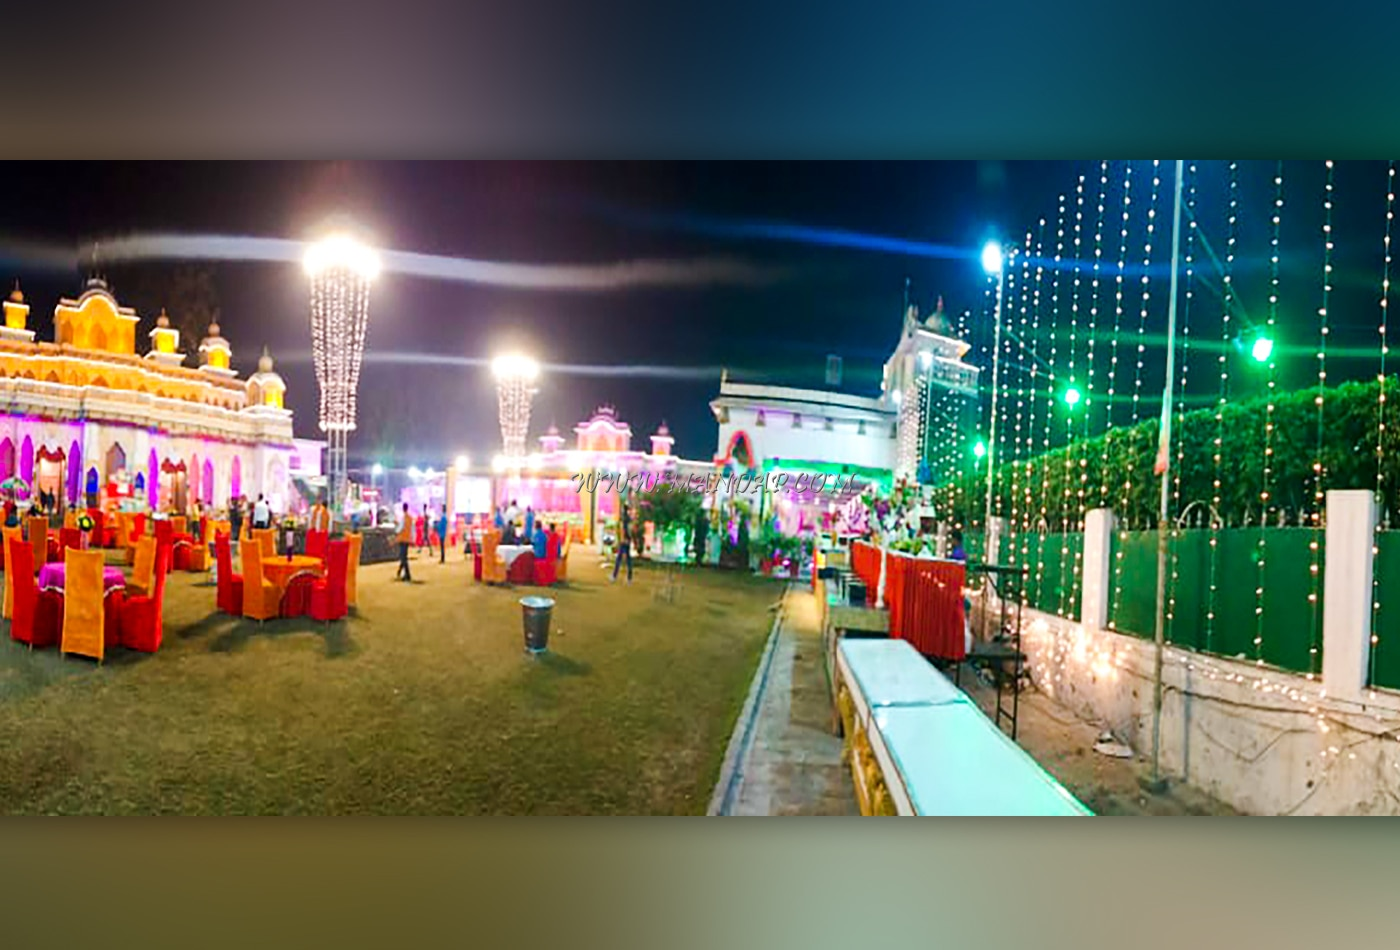 Find More Banquet Halls in Vasundhara